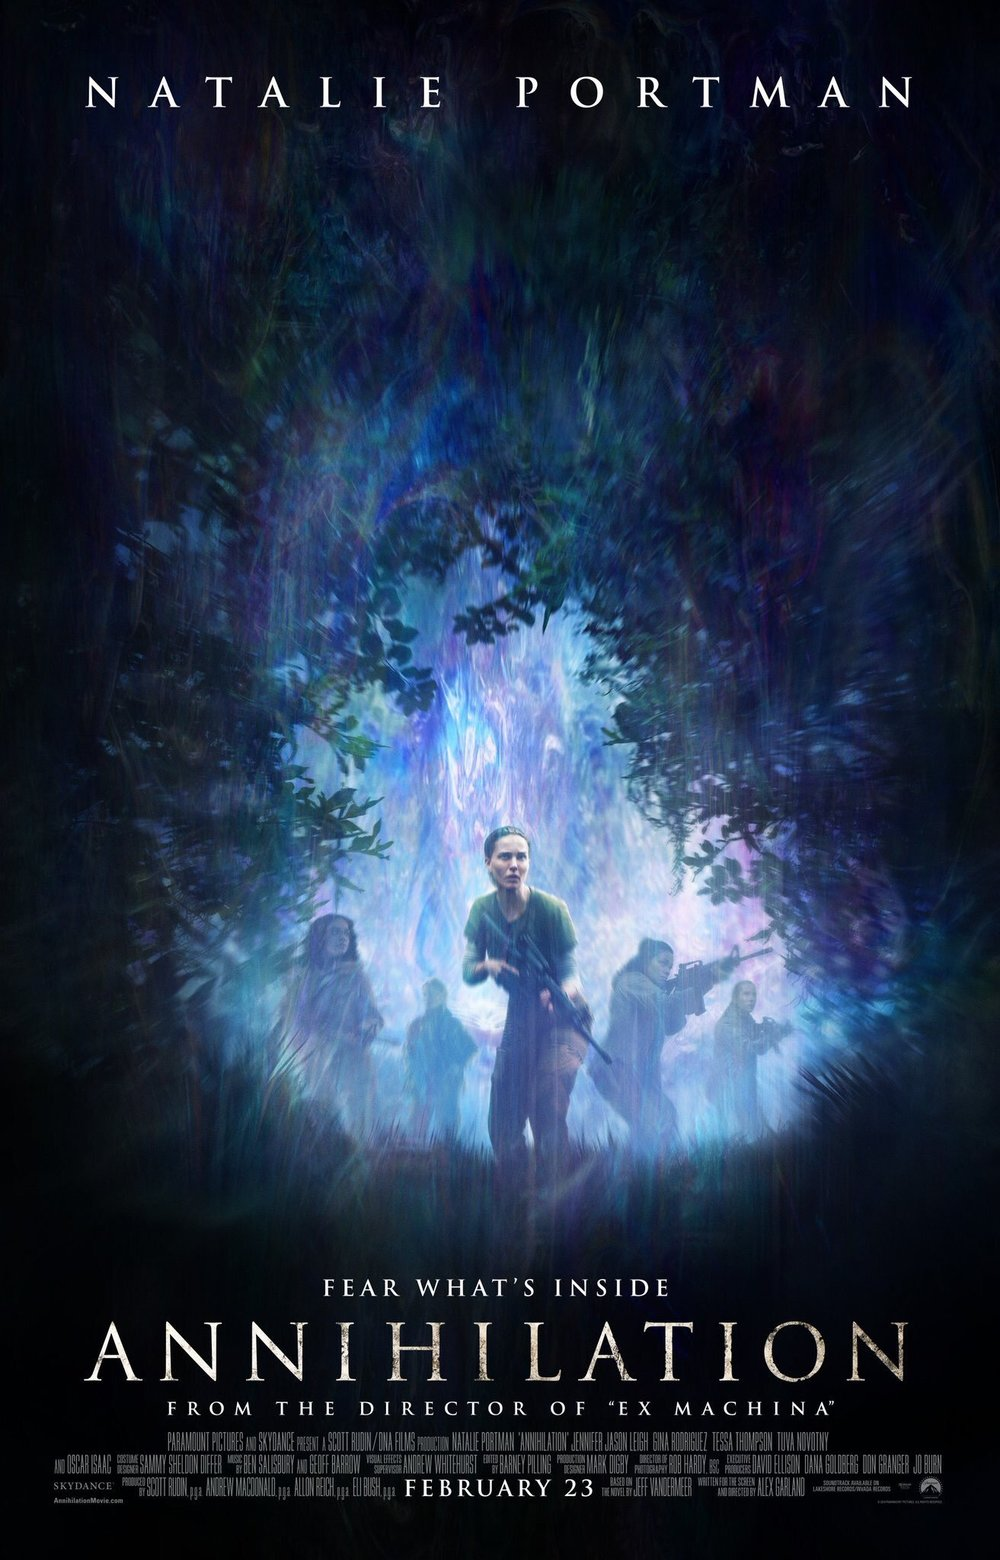 "Othersode #12: Weekend at Area X / Annihilation - Join the squad as we journey deep into Area X for our long-awaited discussion of ANNIHILATION! In this episode, we tackle Alex Garland's trippy adaptation of the Jeff VanderMeer novel, and we ask all of the important questions: What is this film ""about""? How does it compare to the book? Does Alex Garland think all relationships take place primarily in bed? Was Oscar Isaac's accent switch intentional, or is this a Nic Cage in Con Air situation? The answers you crave and more lie ahead… just try not to get any Shimmer in your ears."